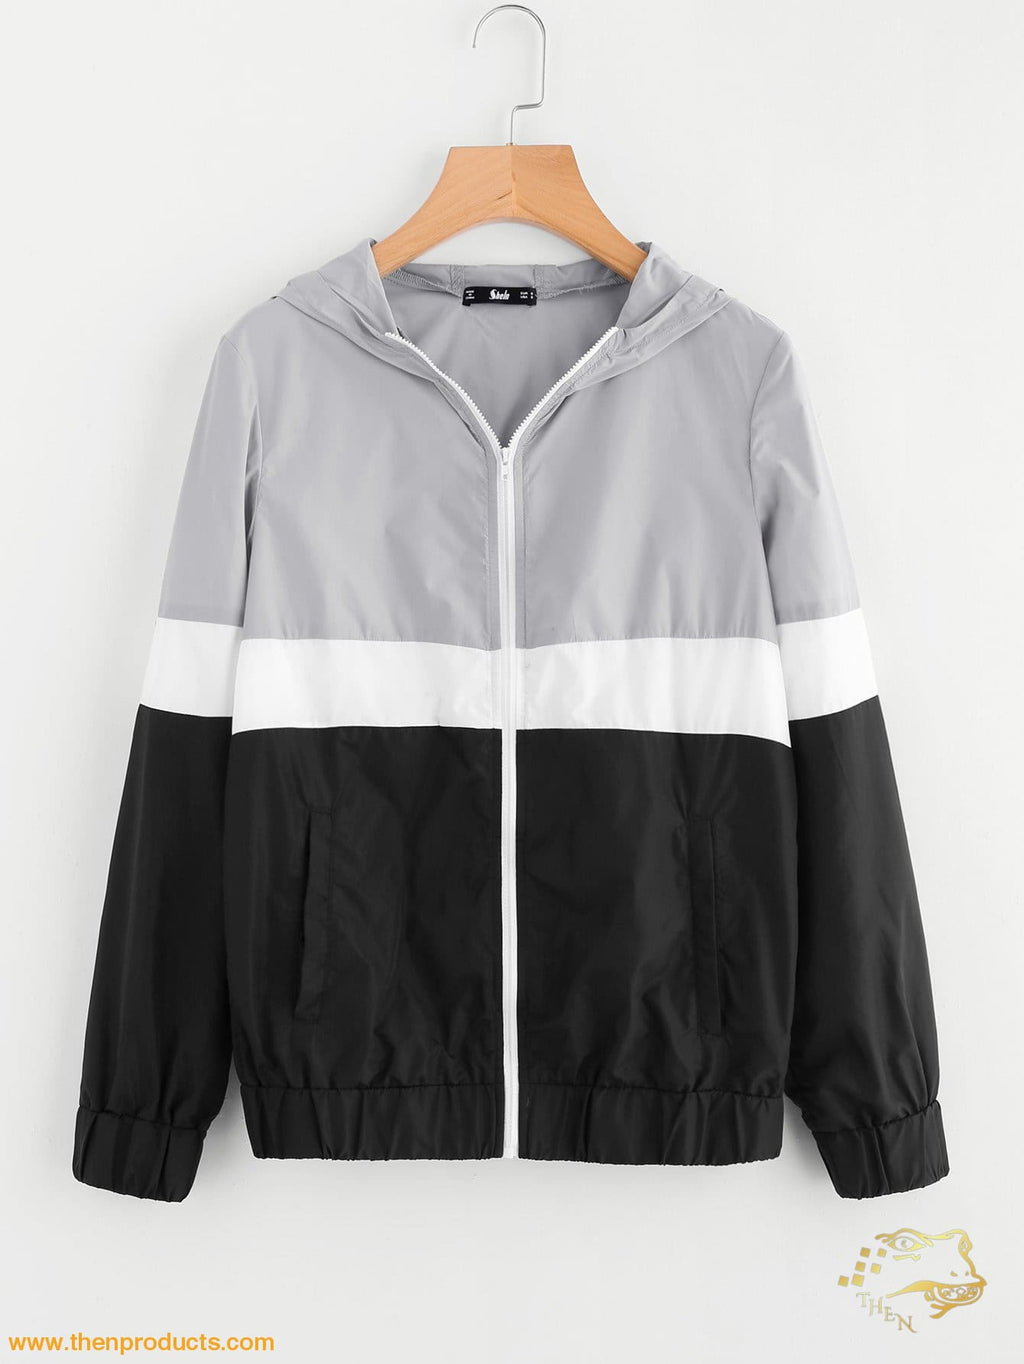 Cut And Sew Hoodie Windbreaker Jacket - Then Products